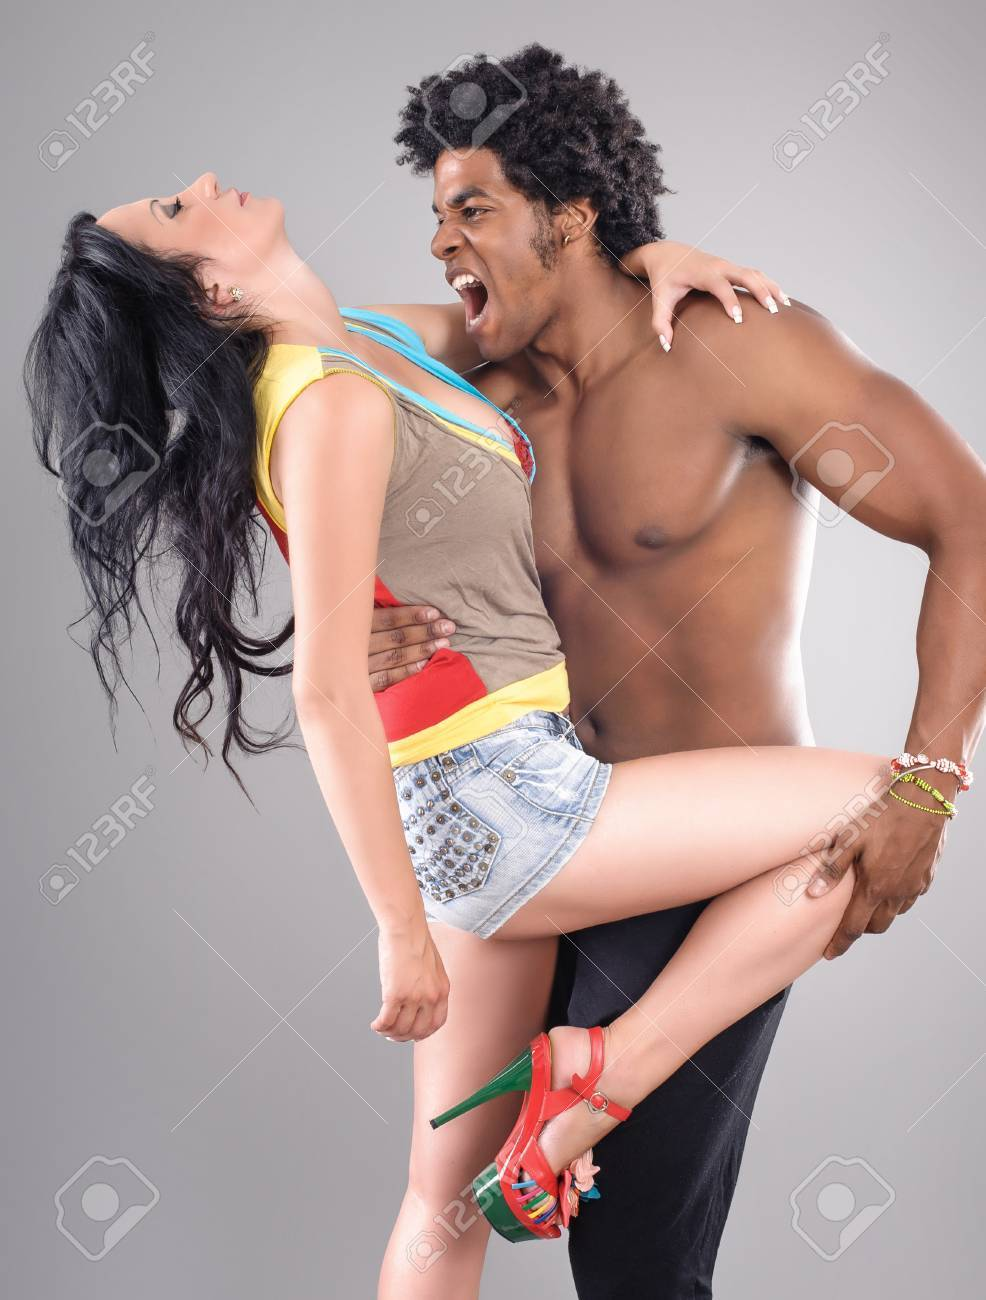 Passionate Couple Young And Sexy Passionate Couple On Gray Studio Background Stock Photo 41233717